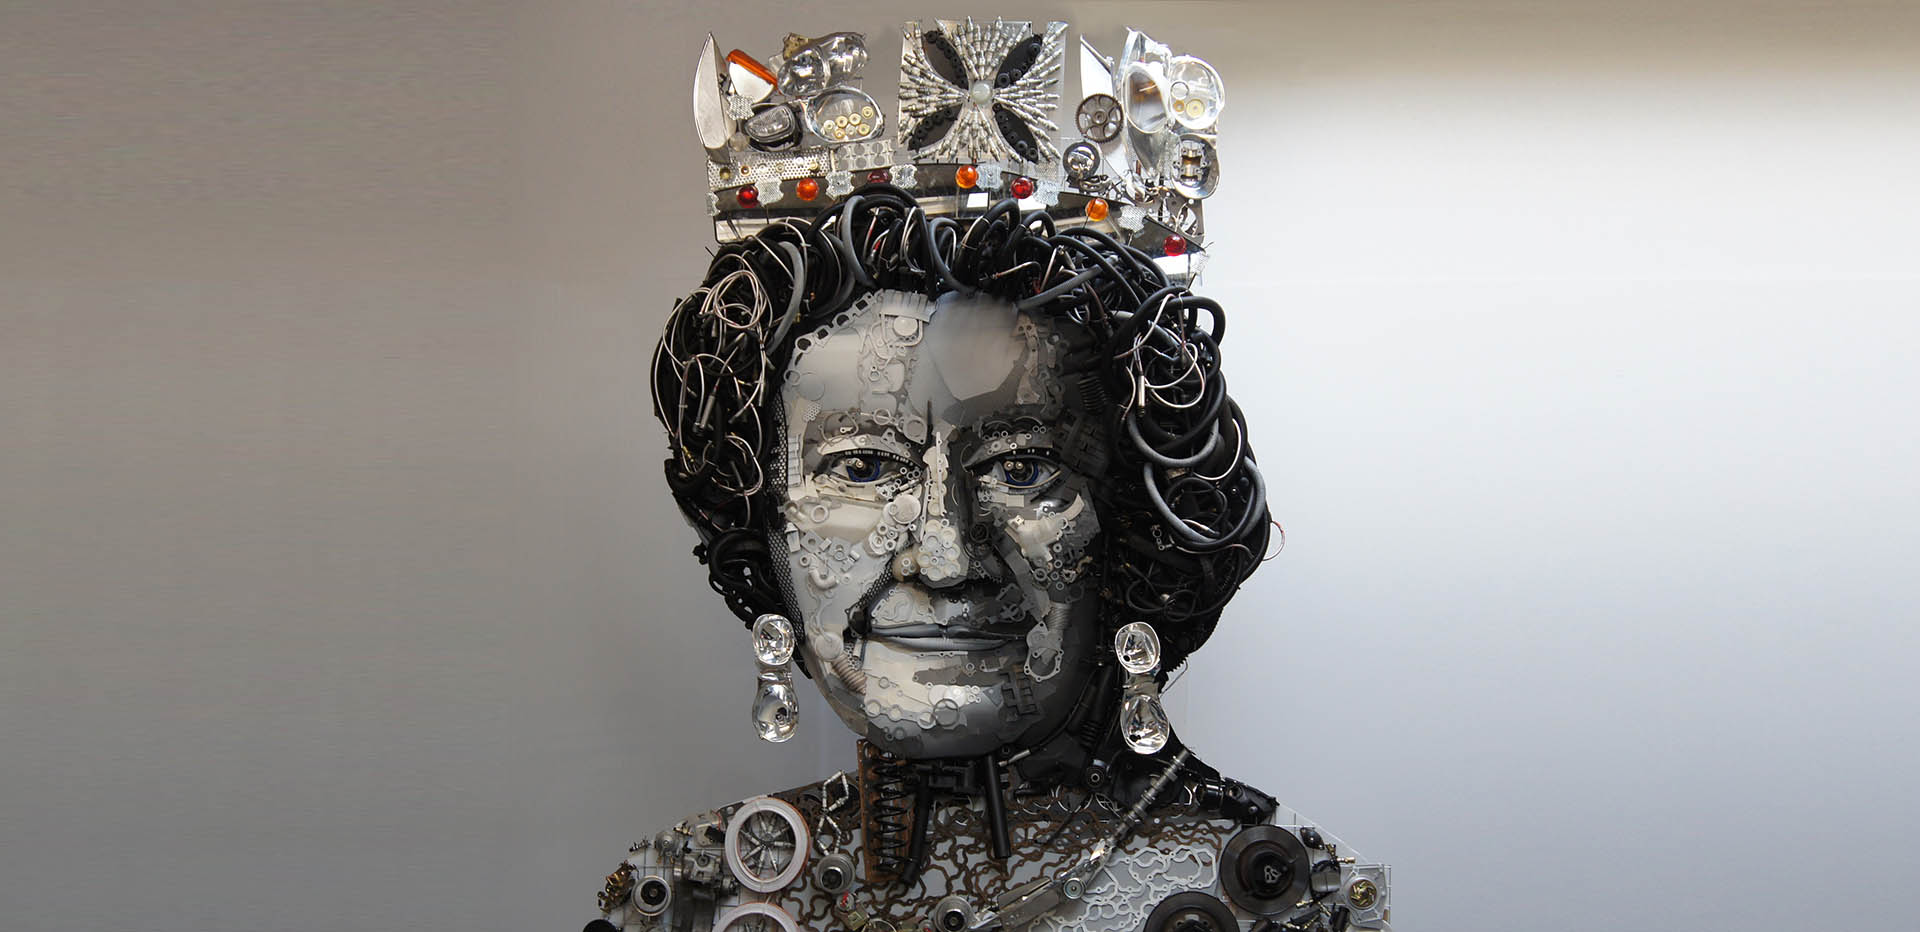 Car Part Sculpture of Queen Elizabeth II